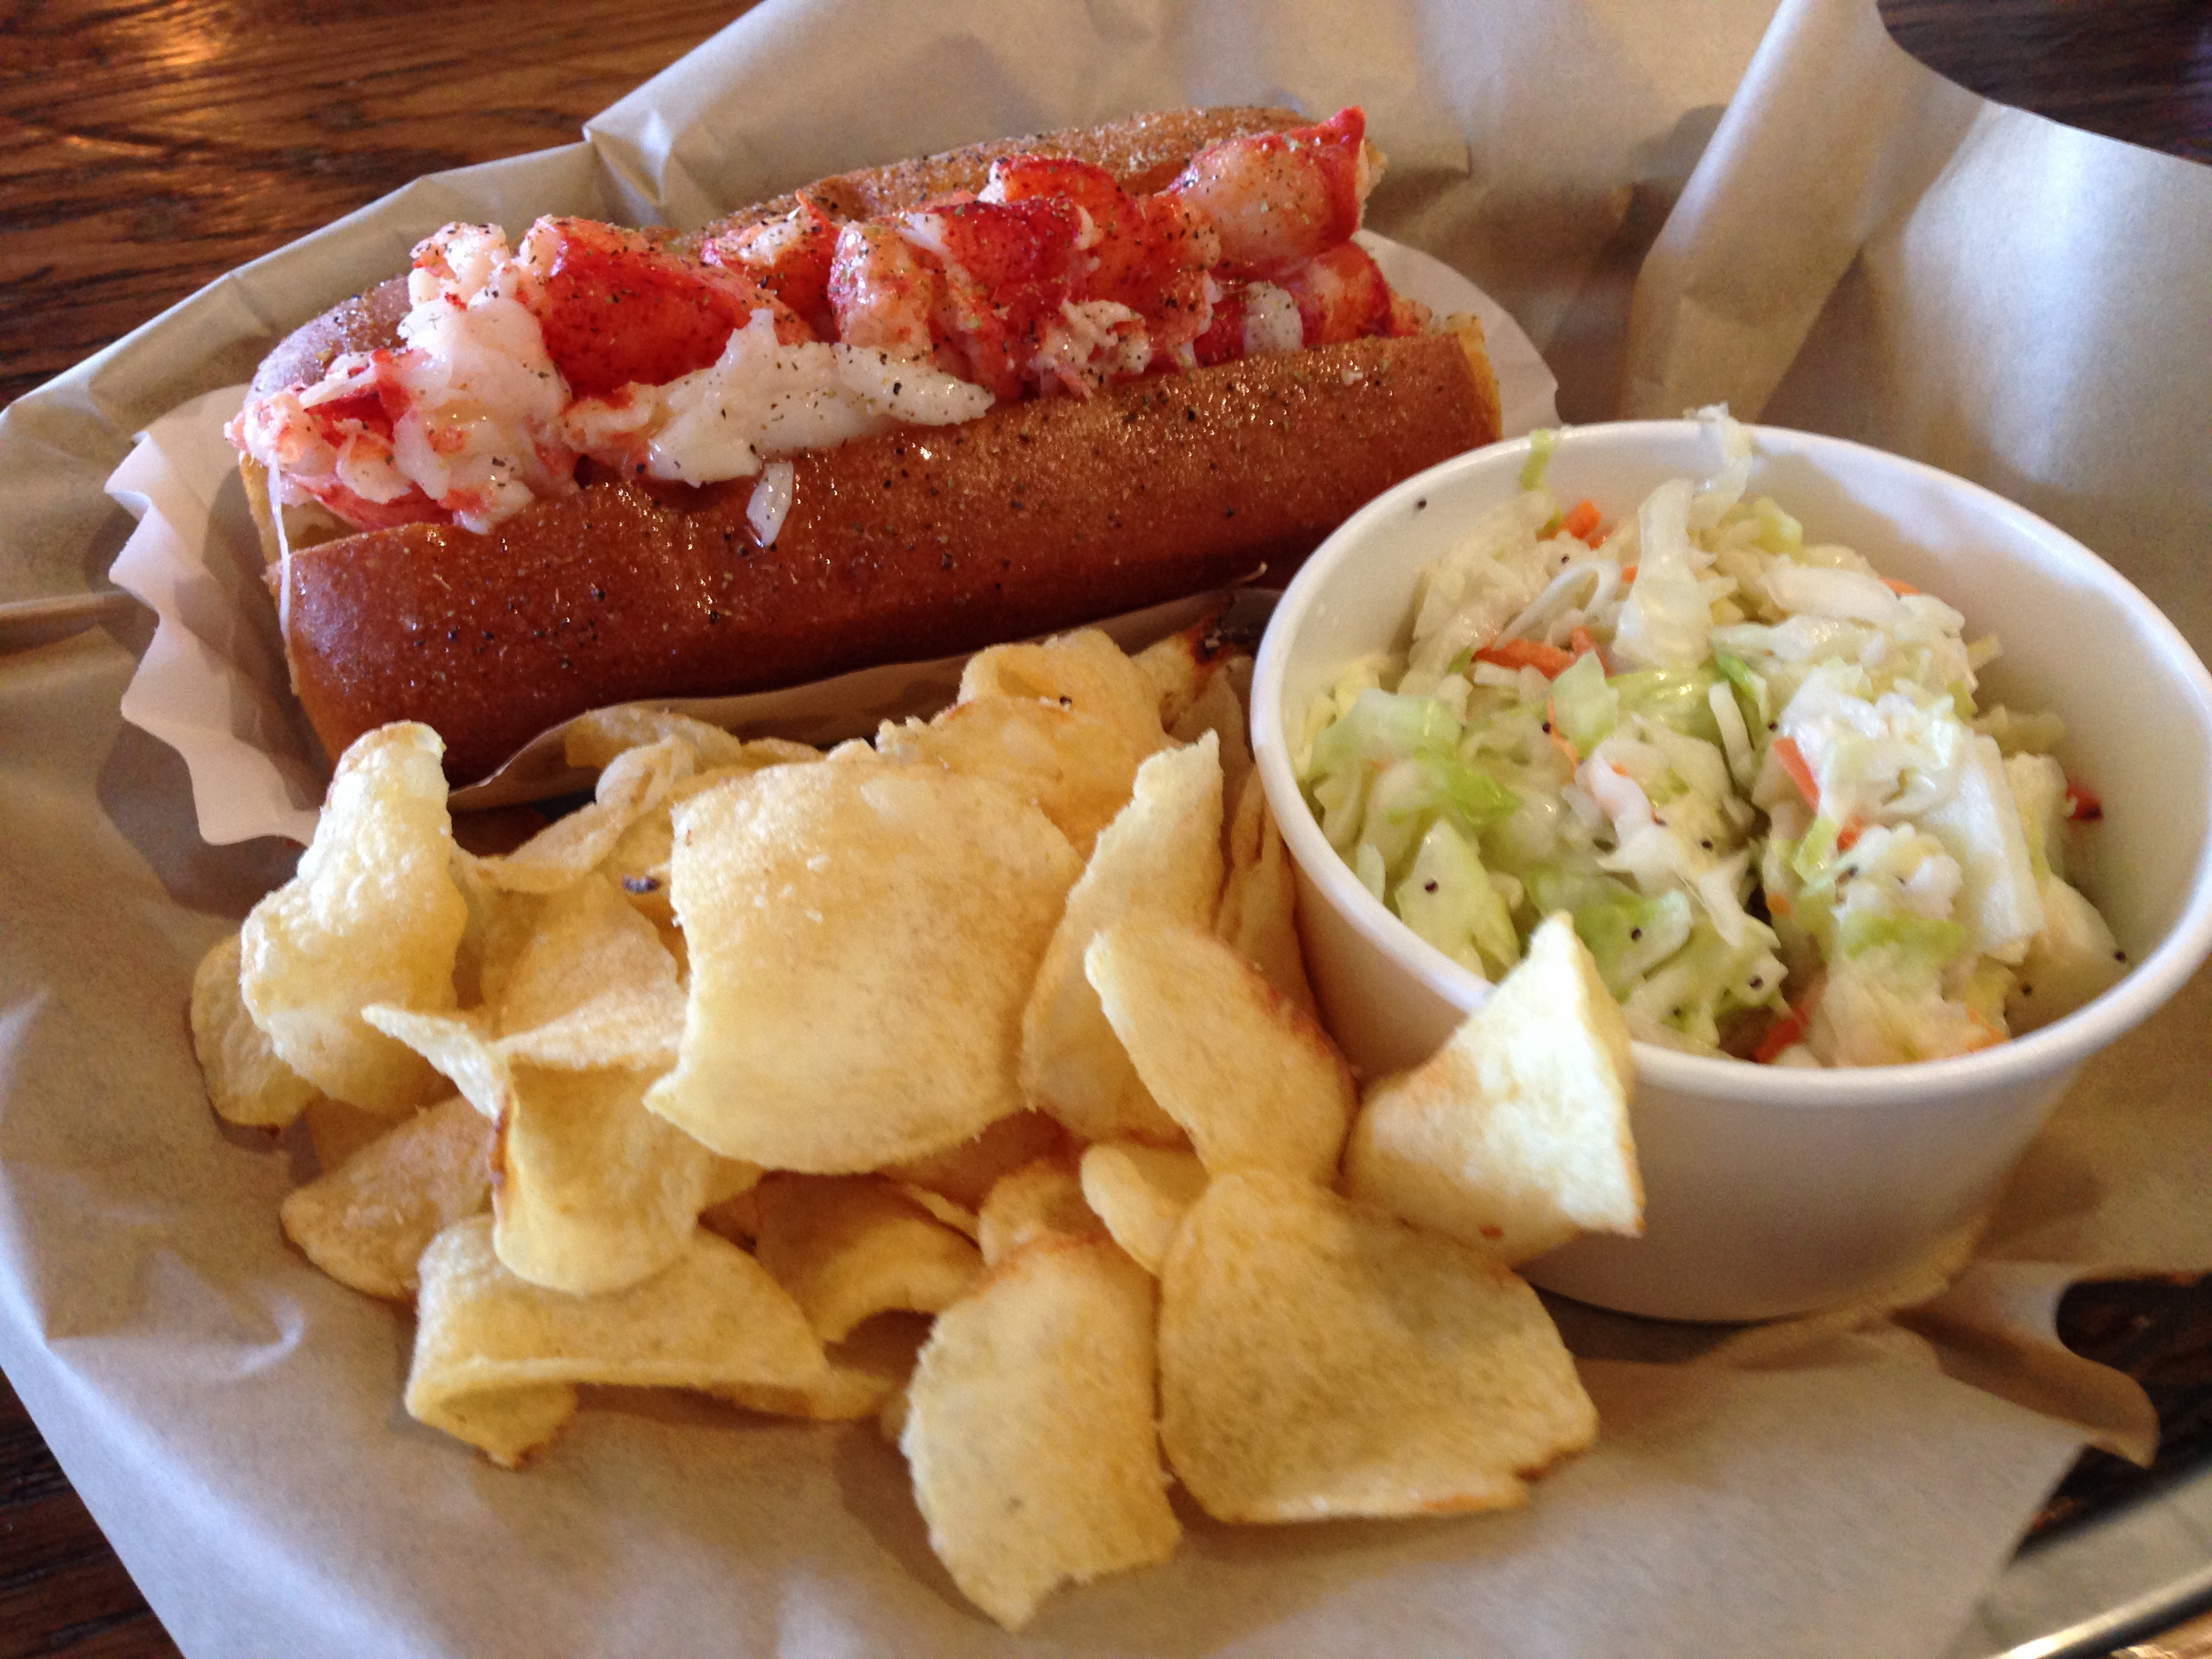 New England lobster rolls on the left coast | San Diego Reader